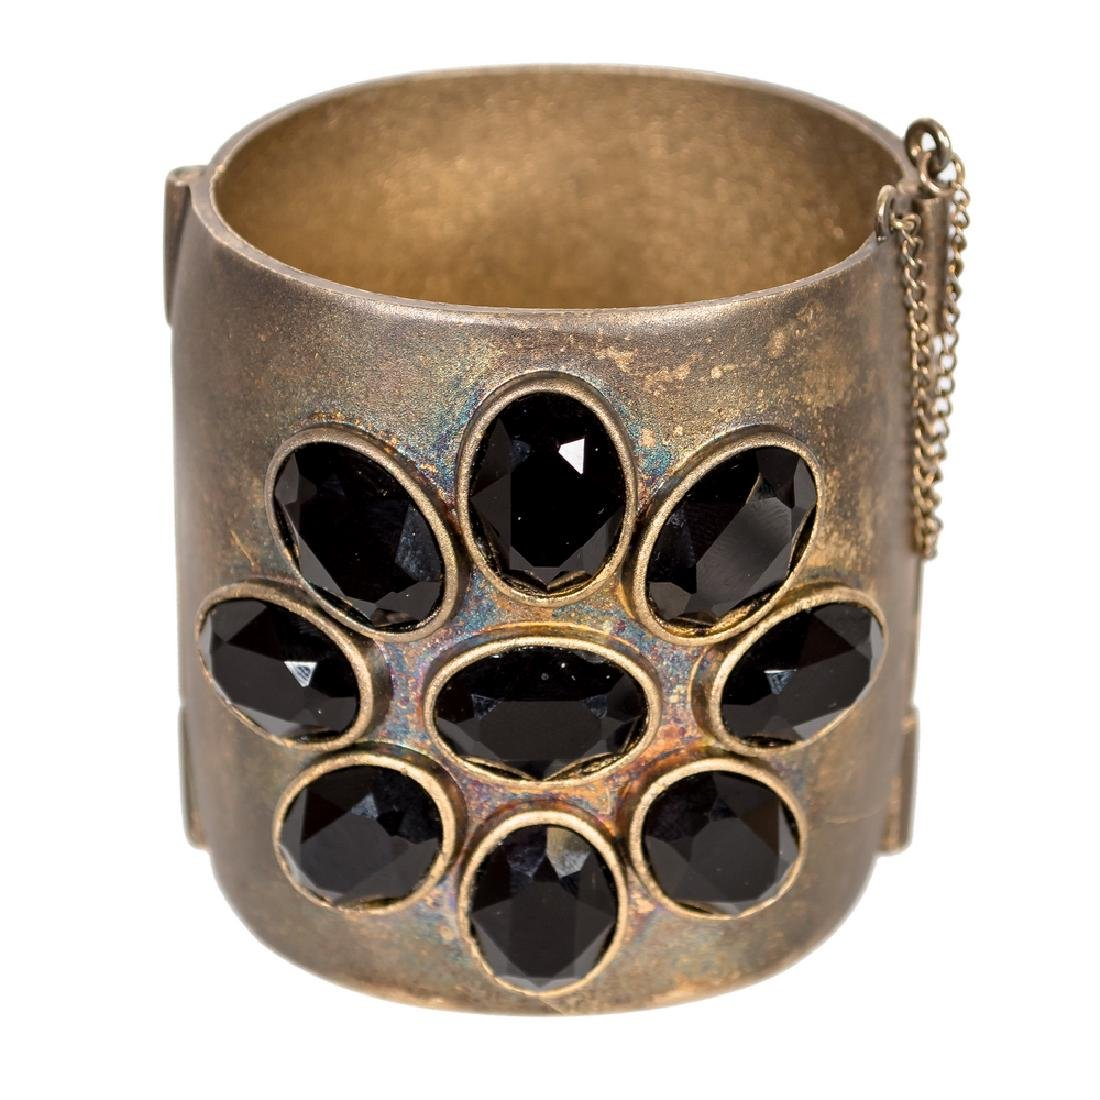 CHANEL METAL CUFF WITH BLACK FACETED STONES